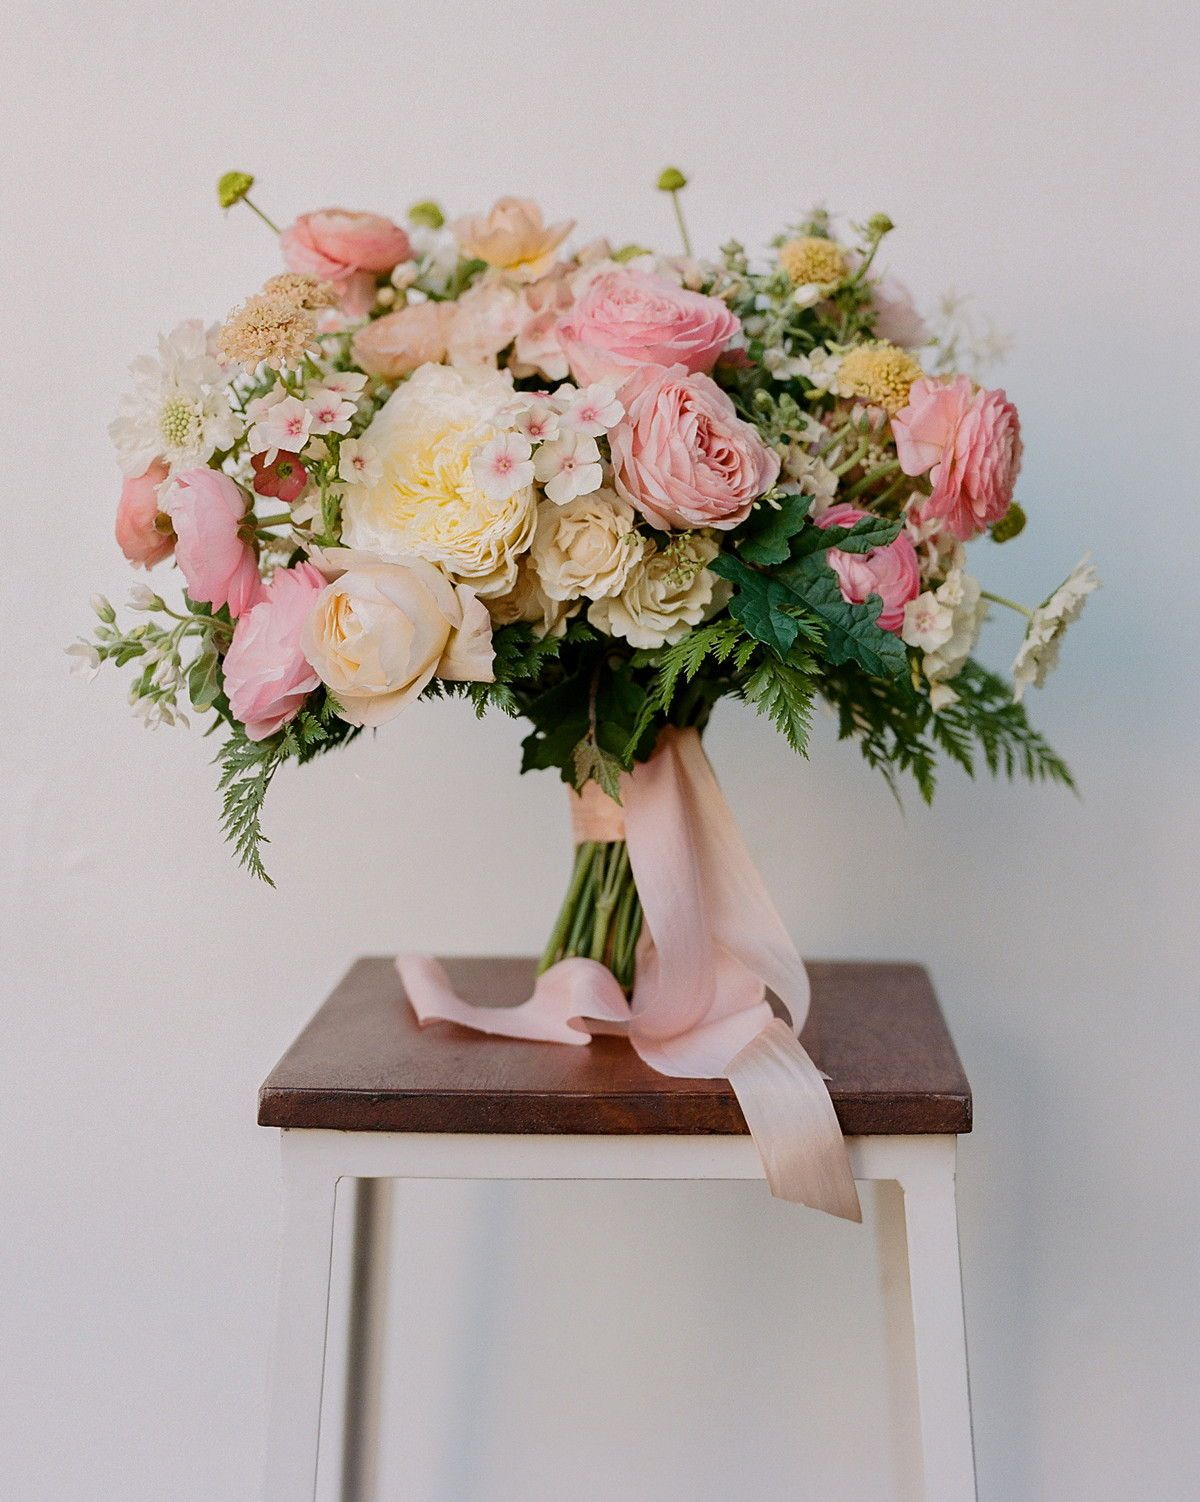 Rose Wedding Bouquets For Every Budget From 100 To 500 Lilac Wedding Bouquet Wedding Flower Arrangements Wedding Bouquets